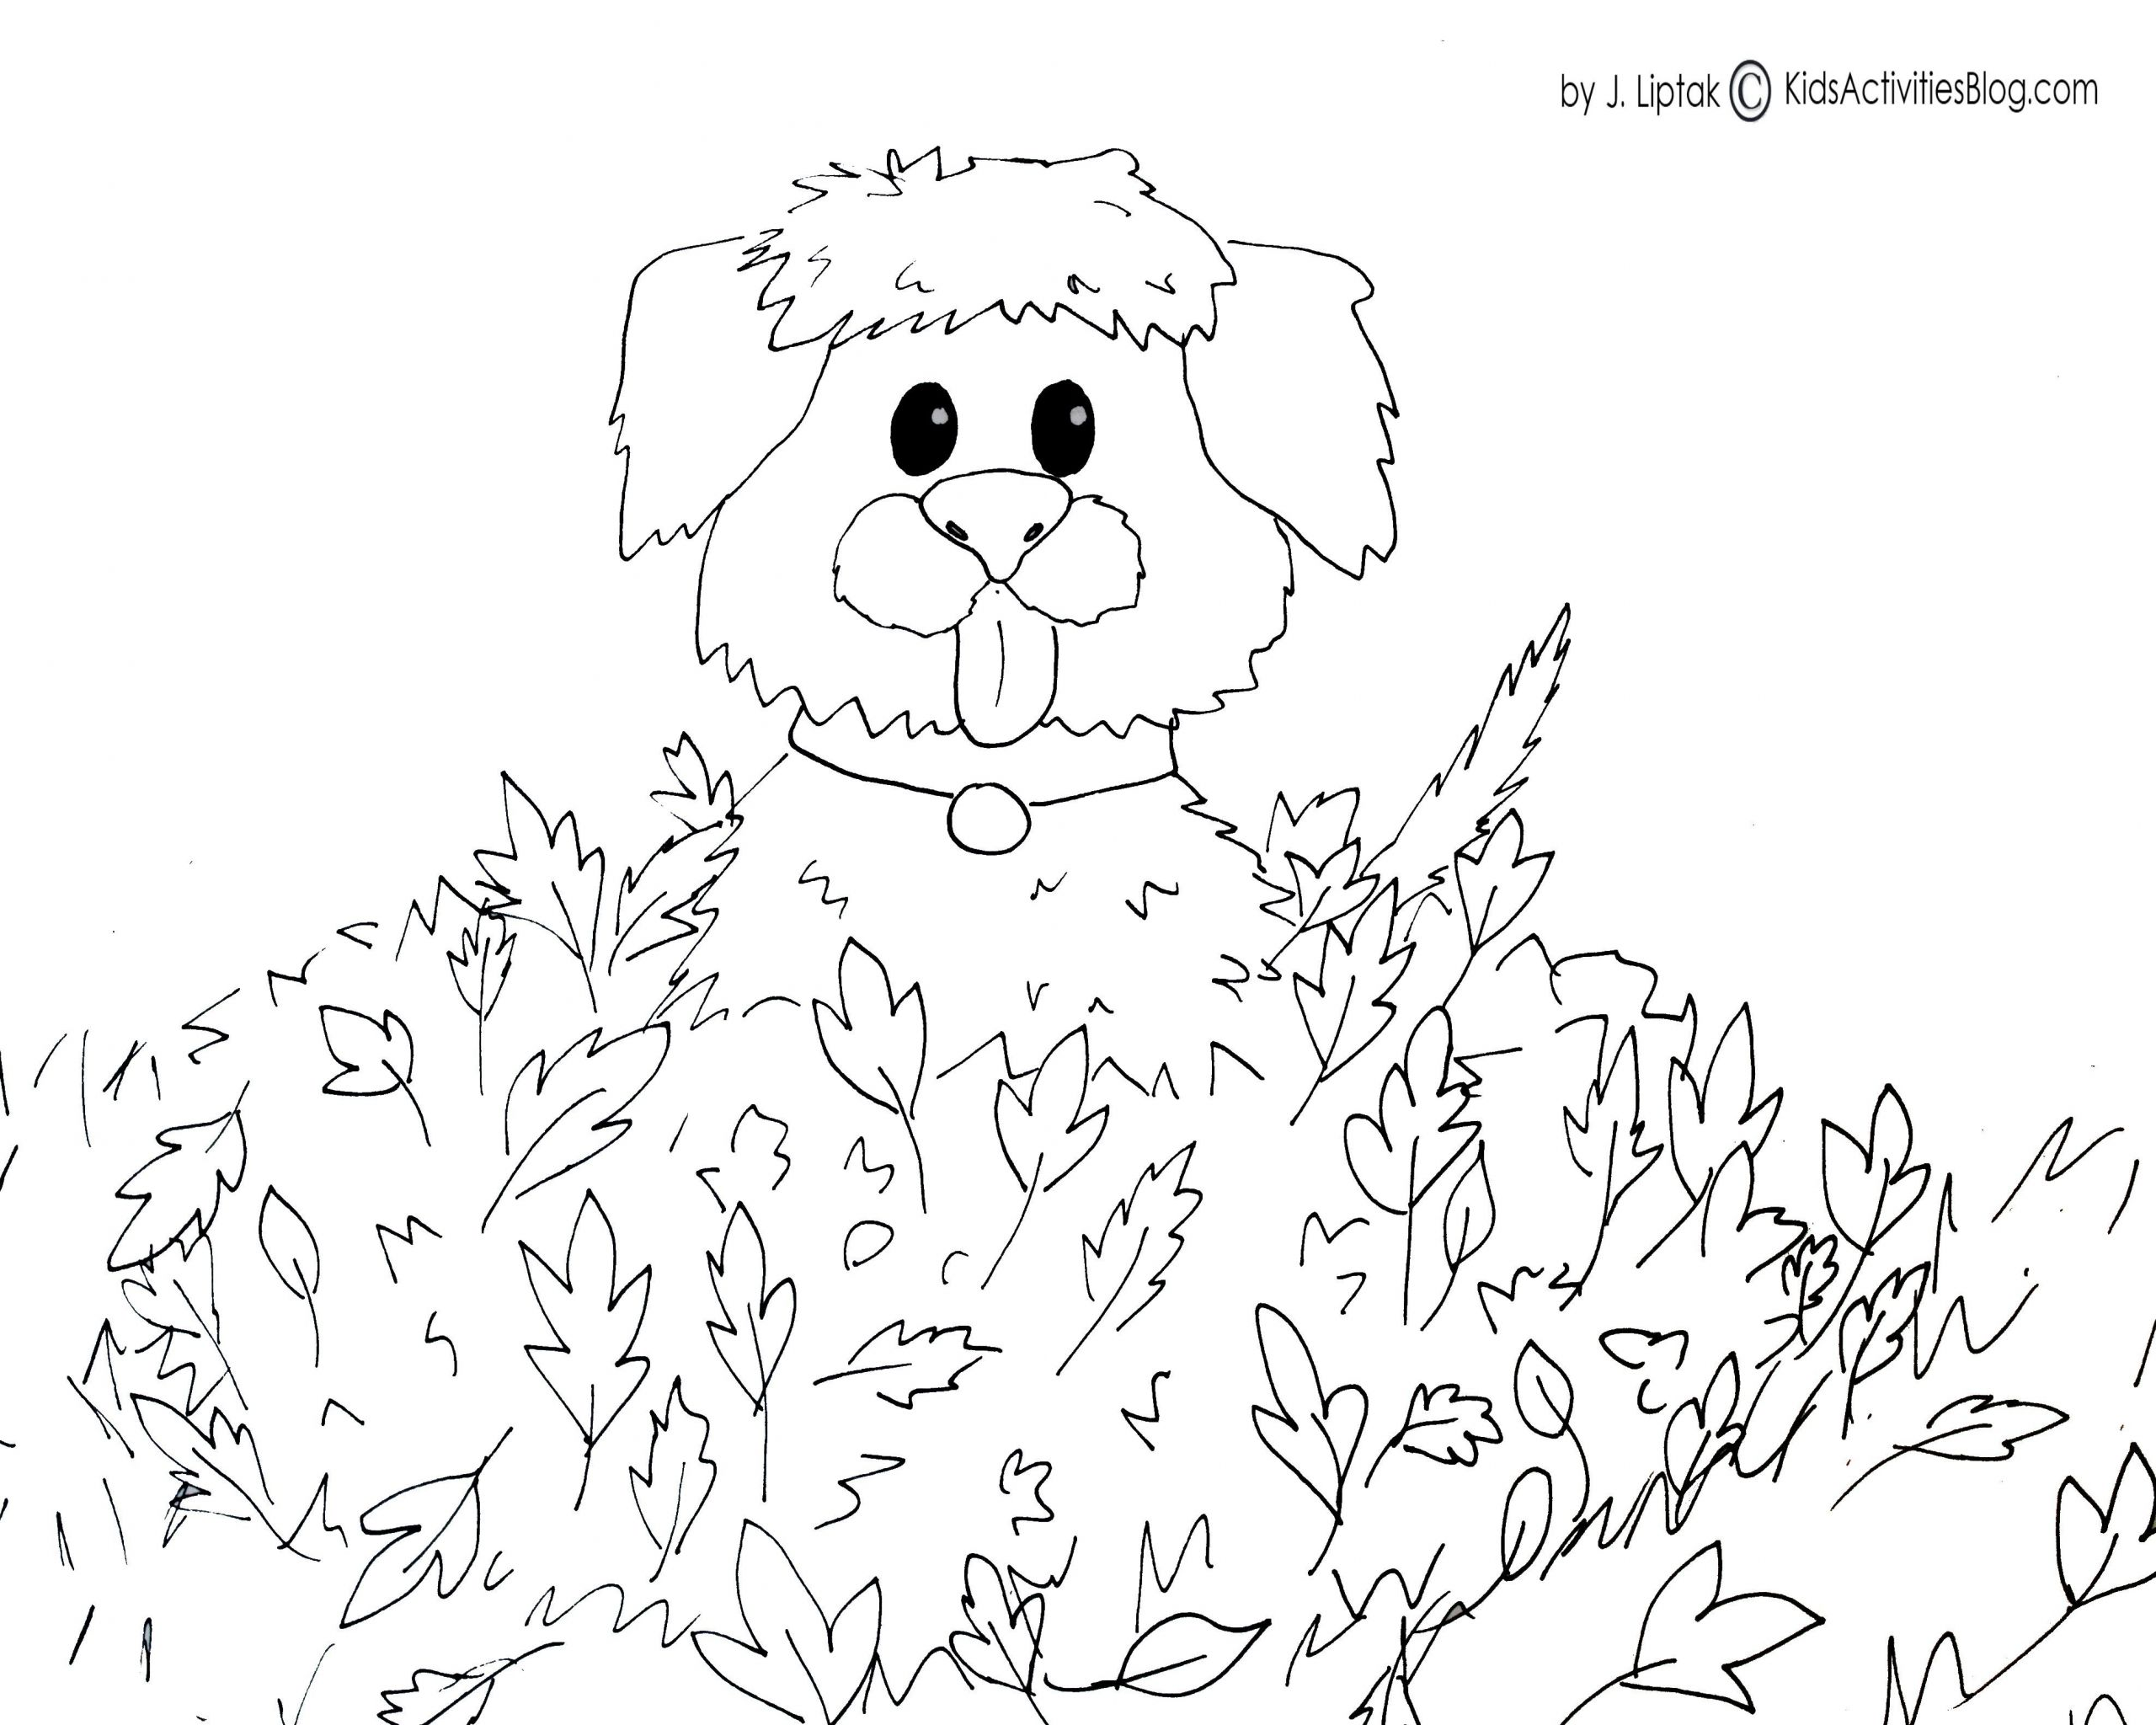 Kids Fall Coloring Pages  4 FREE PRINTABLE FALL COLORING PAGES Kids Activities